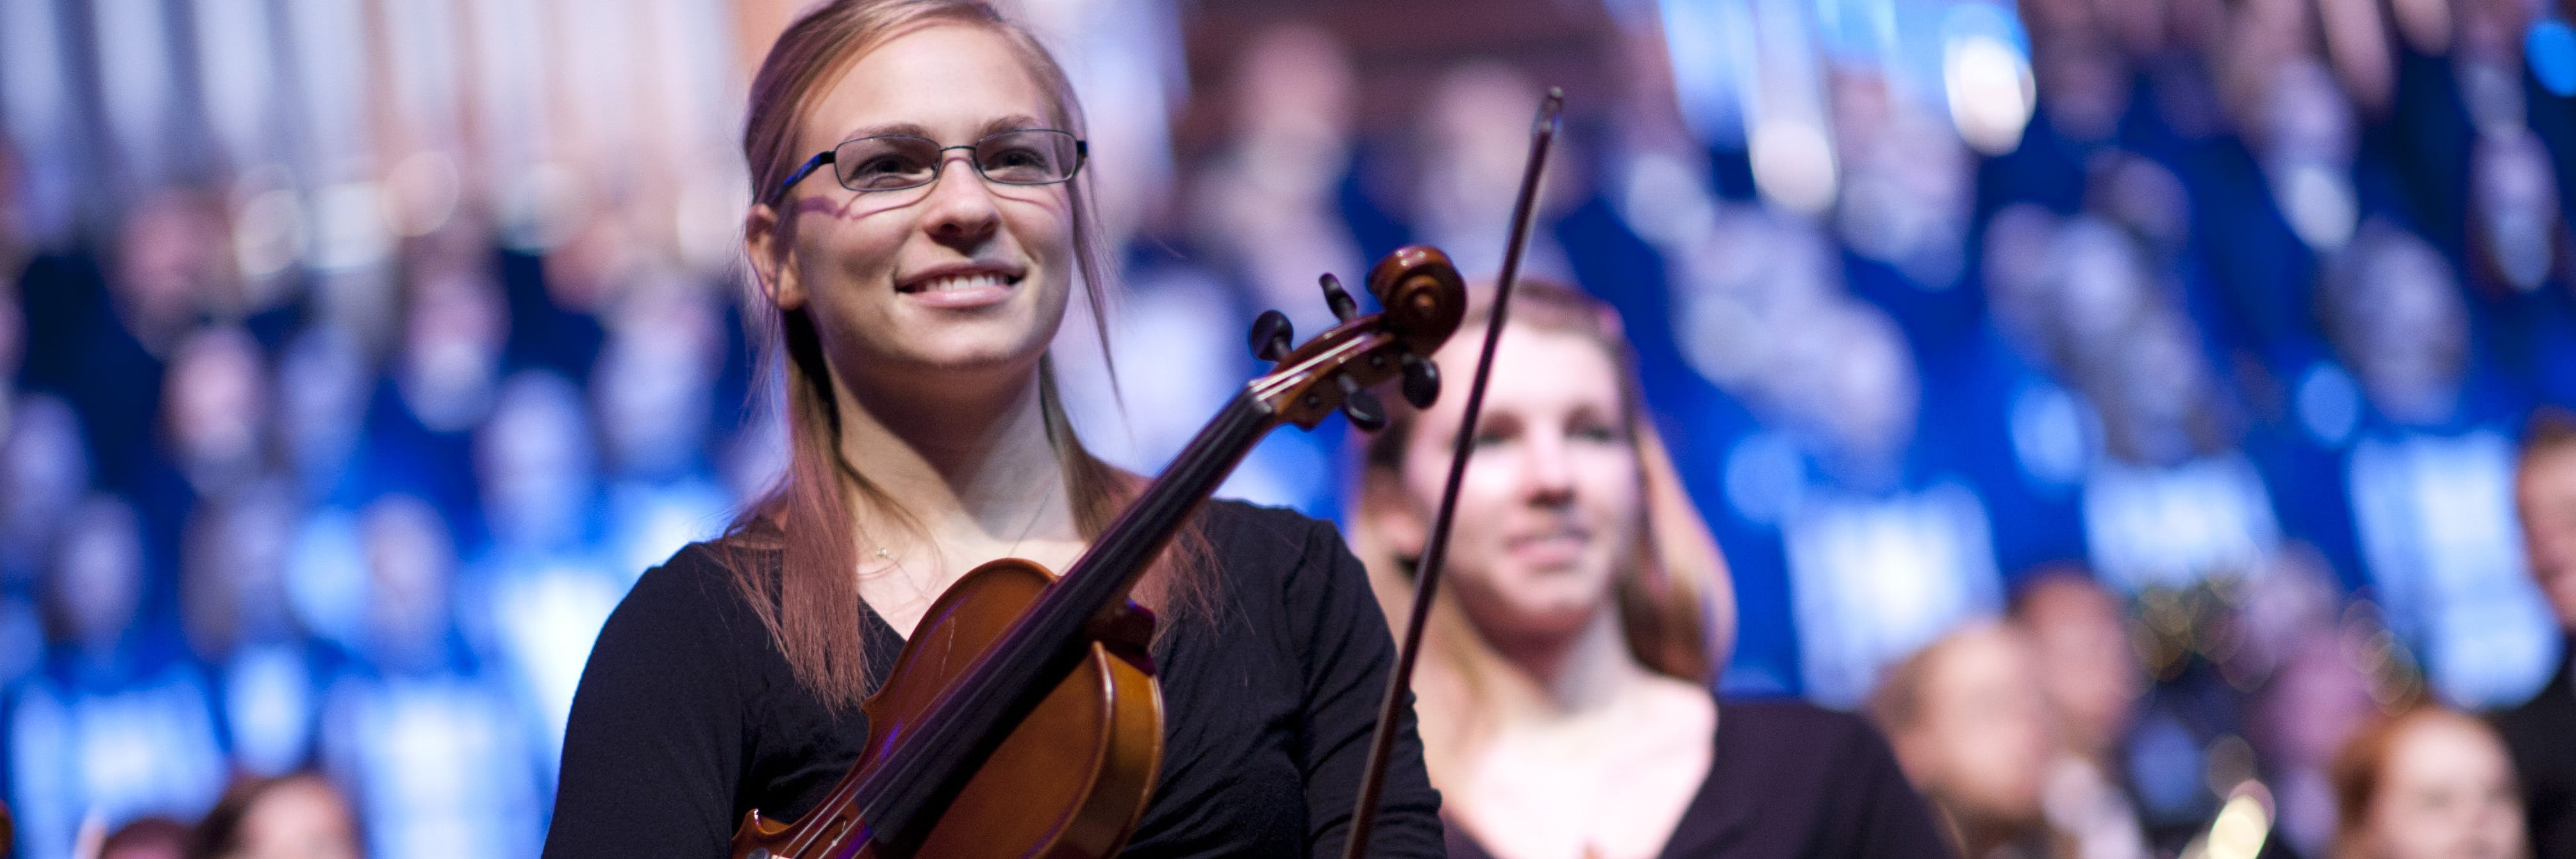 A student violinist at a festival